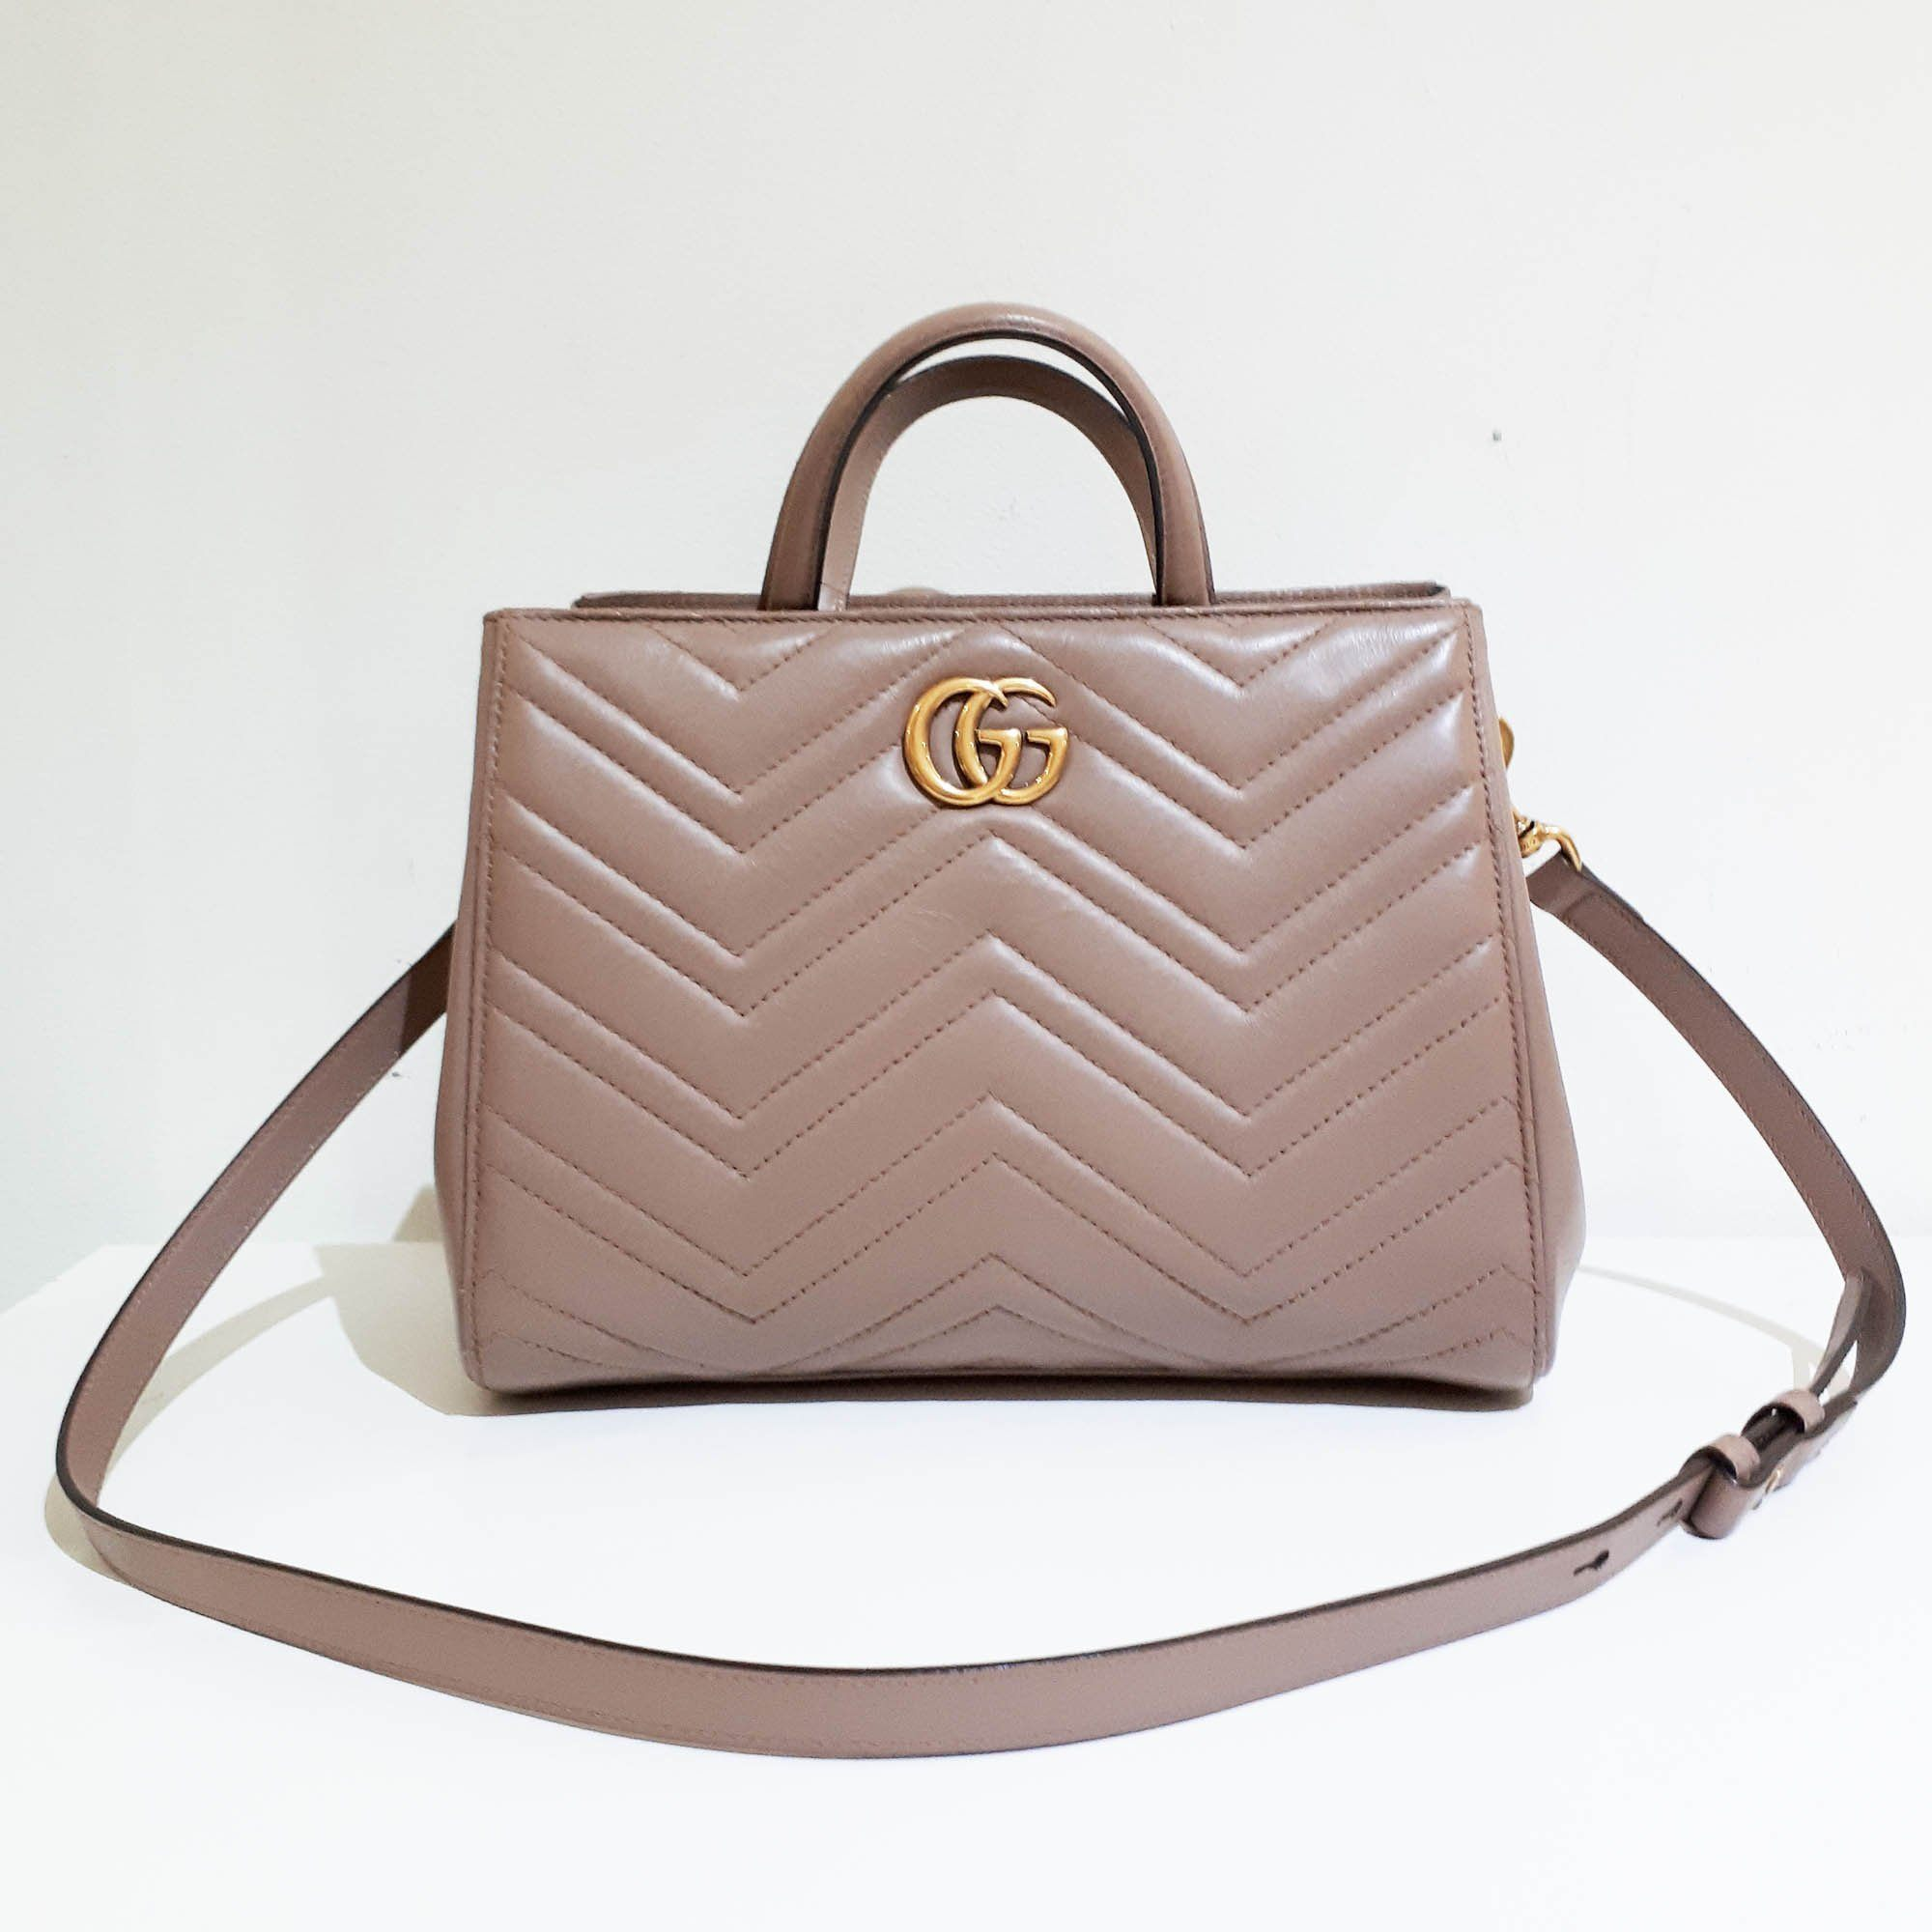 Gucci GG Marmont matelassé top handle bag